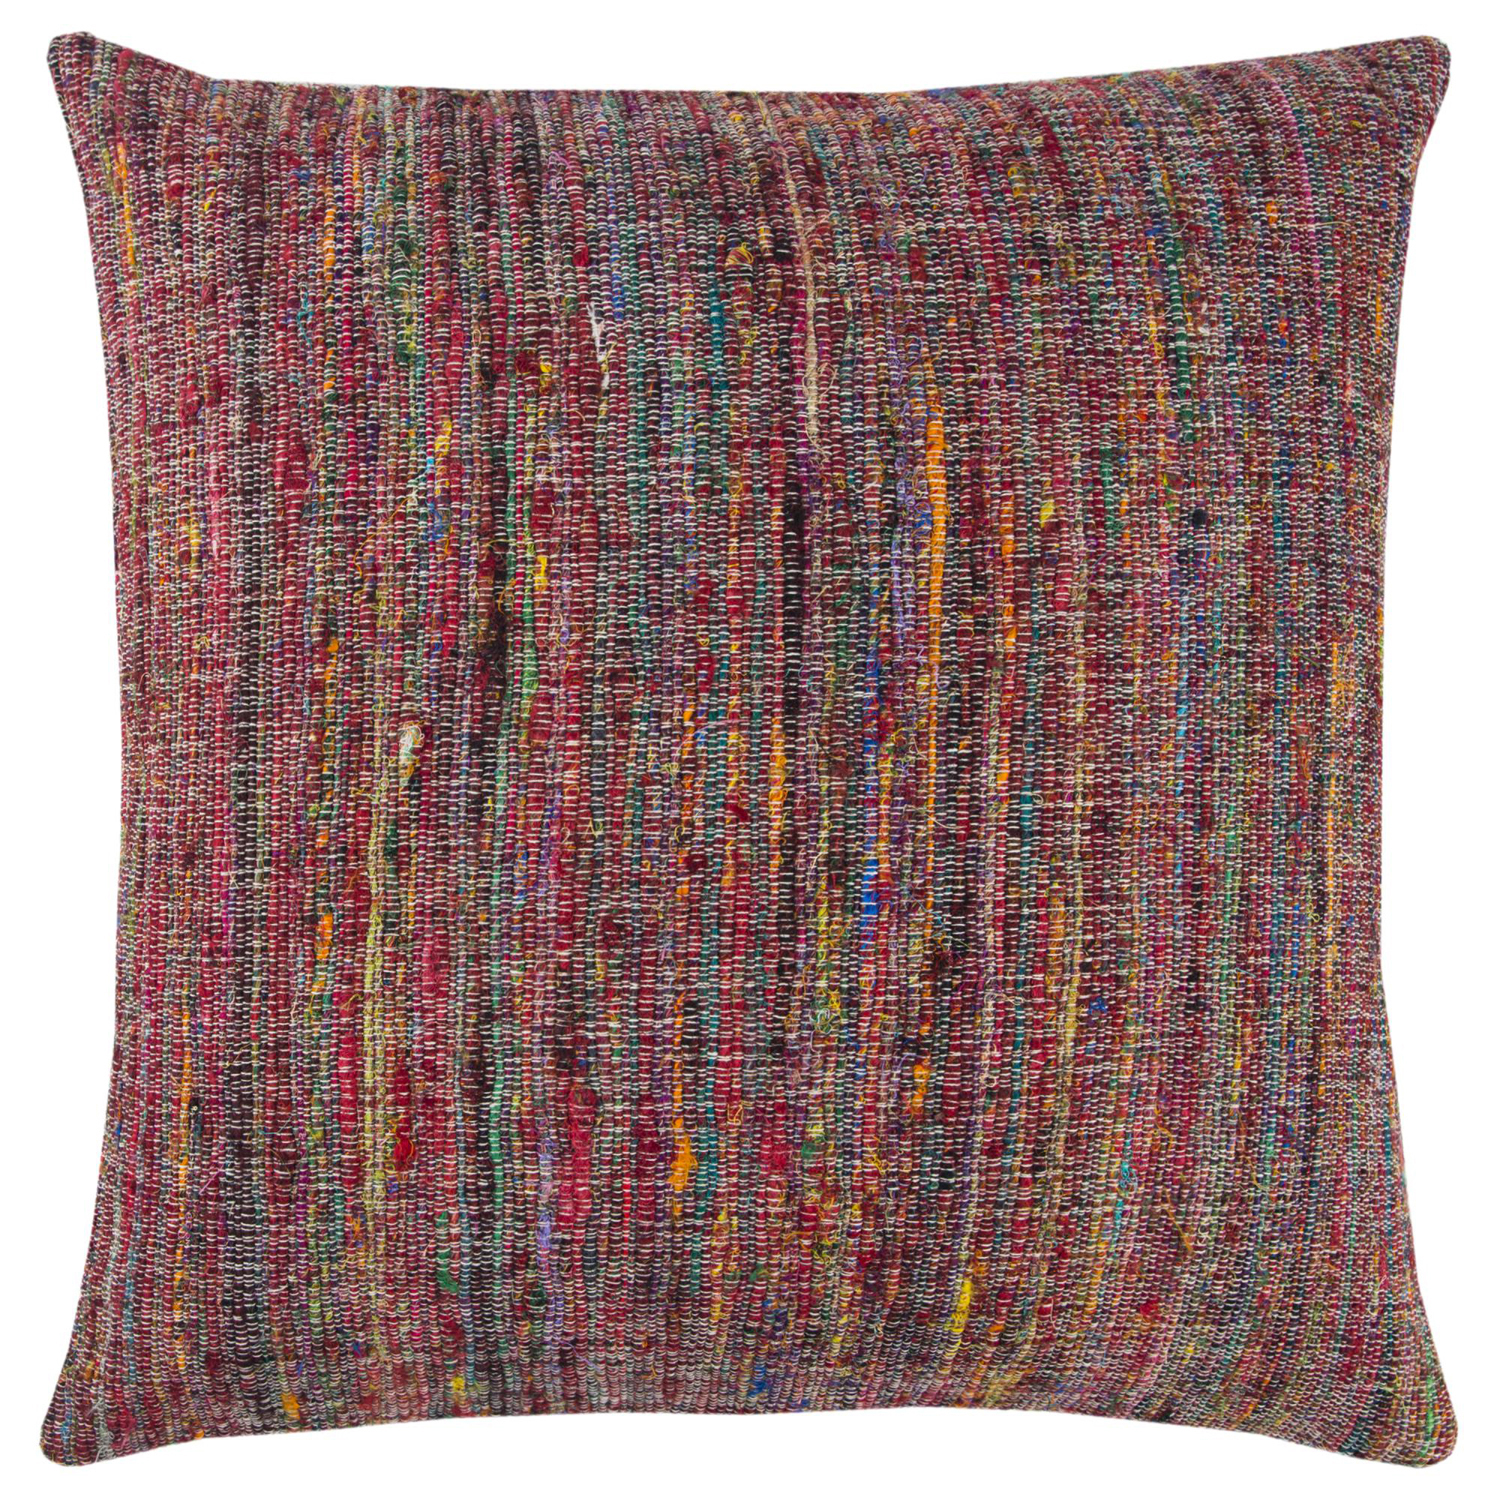 Textural Stripes Red Pillow Cover